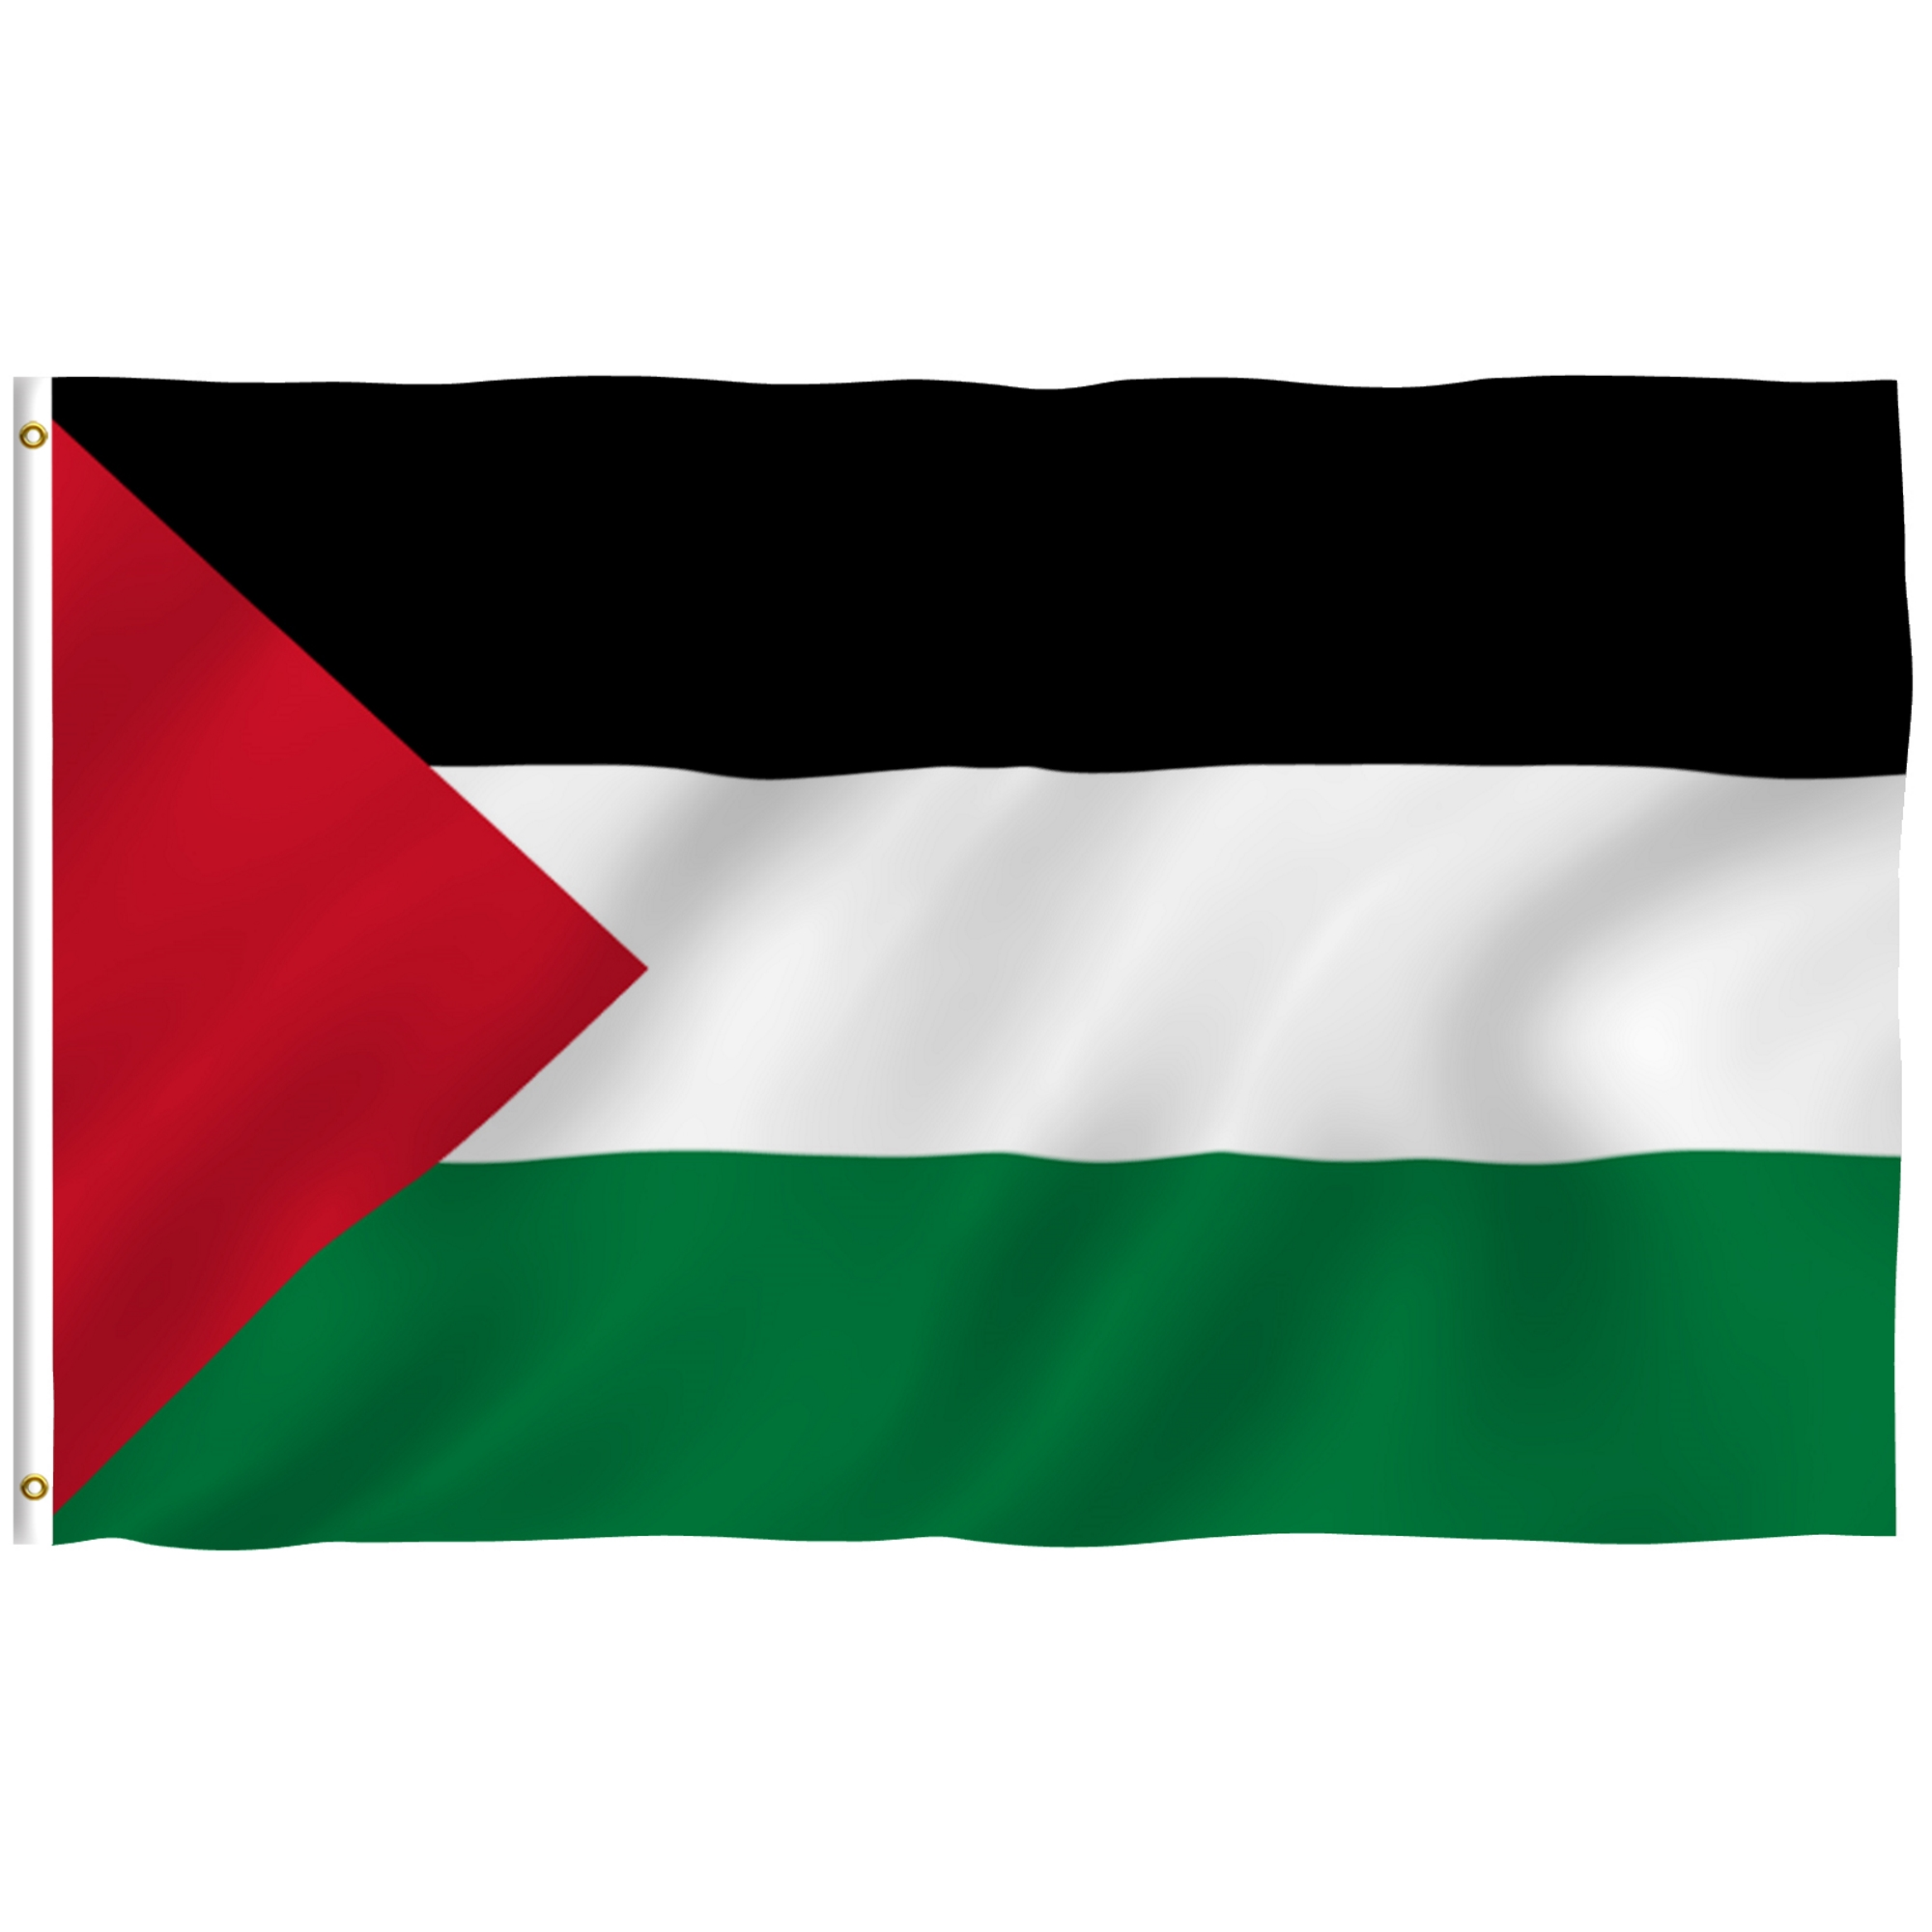 ANLEY [Fly Breeze] 3x5 Foot Palestine Flag - Vivid Color and UV Fade Resistant - Canvas Header and Double Stitched -Palestinian Flags Polyester with Brass Grommets 3 X 5 Ft